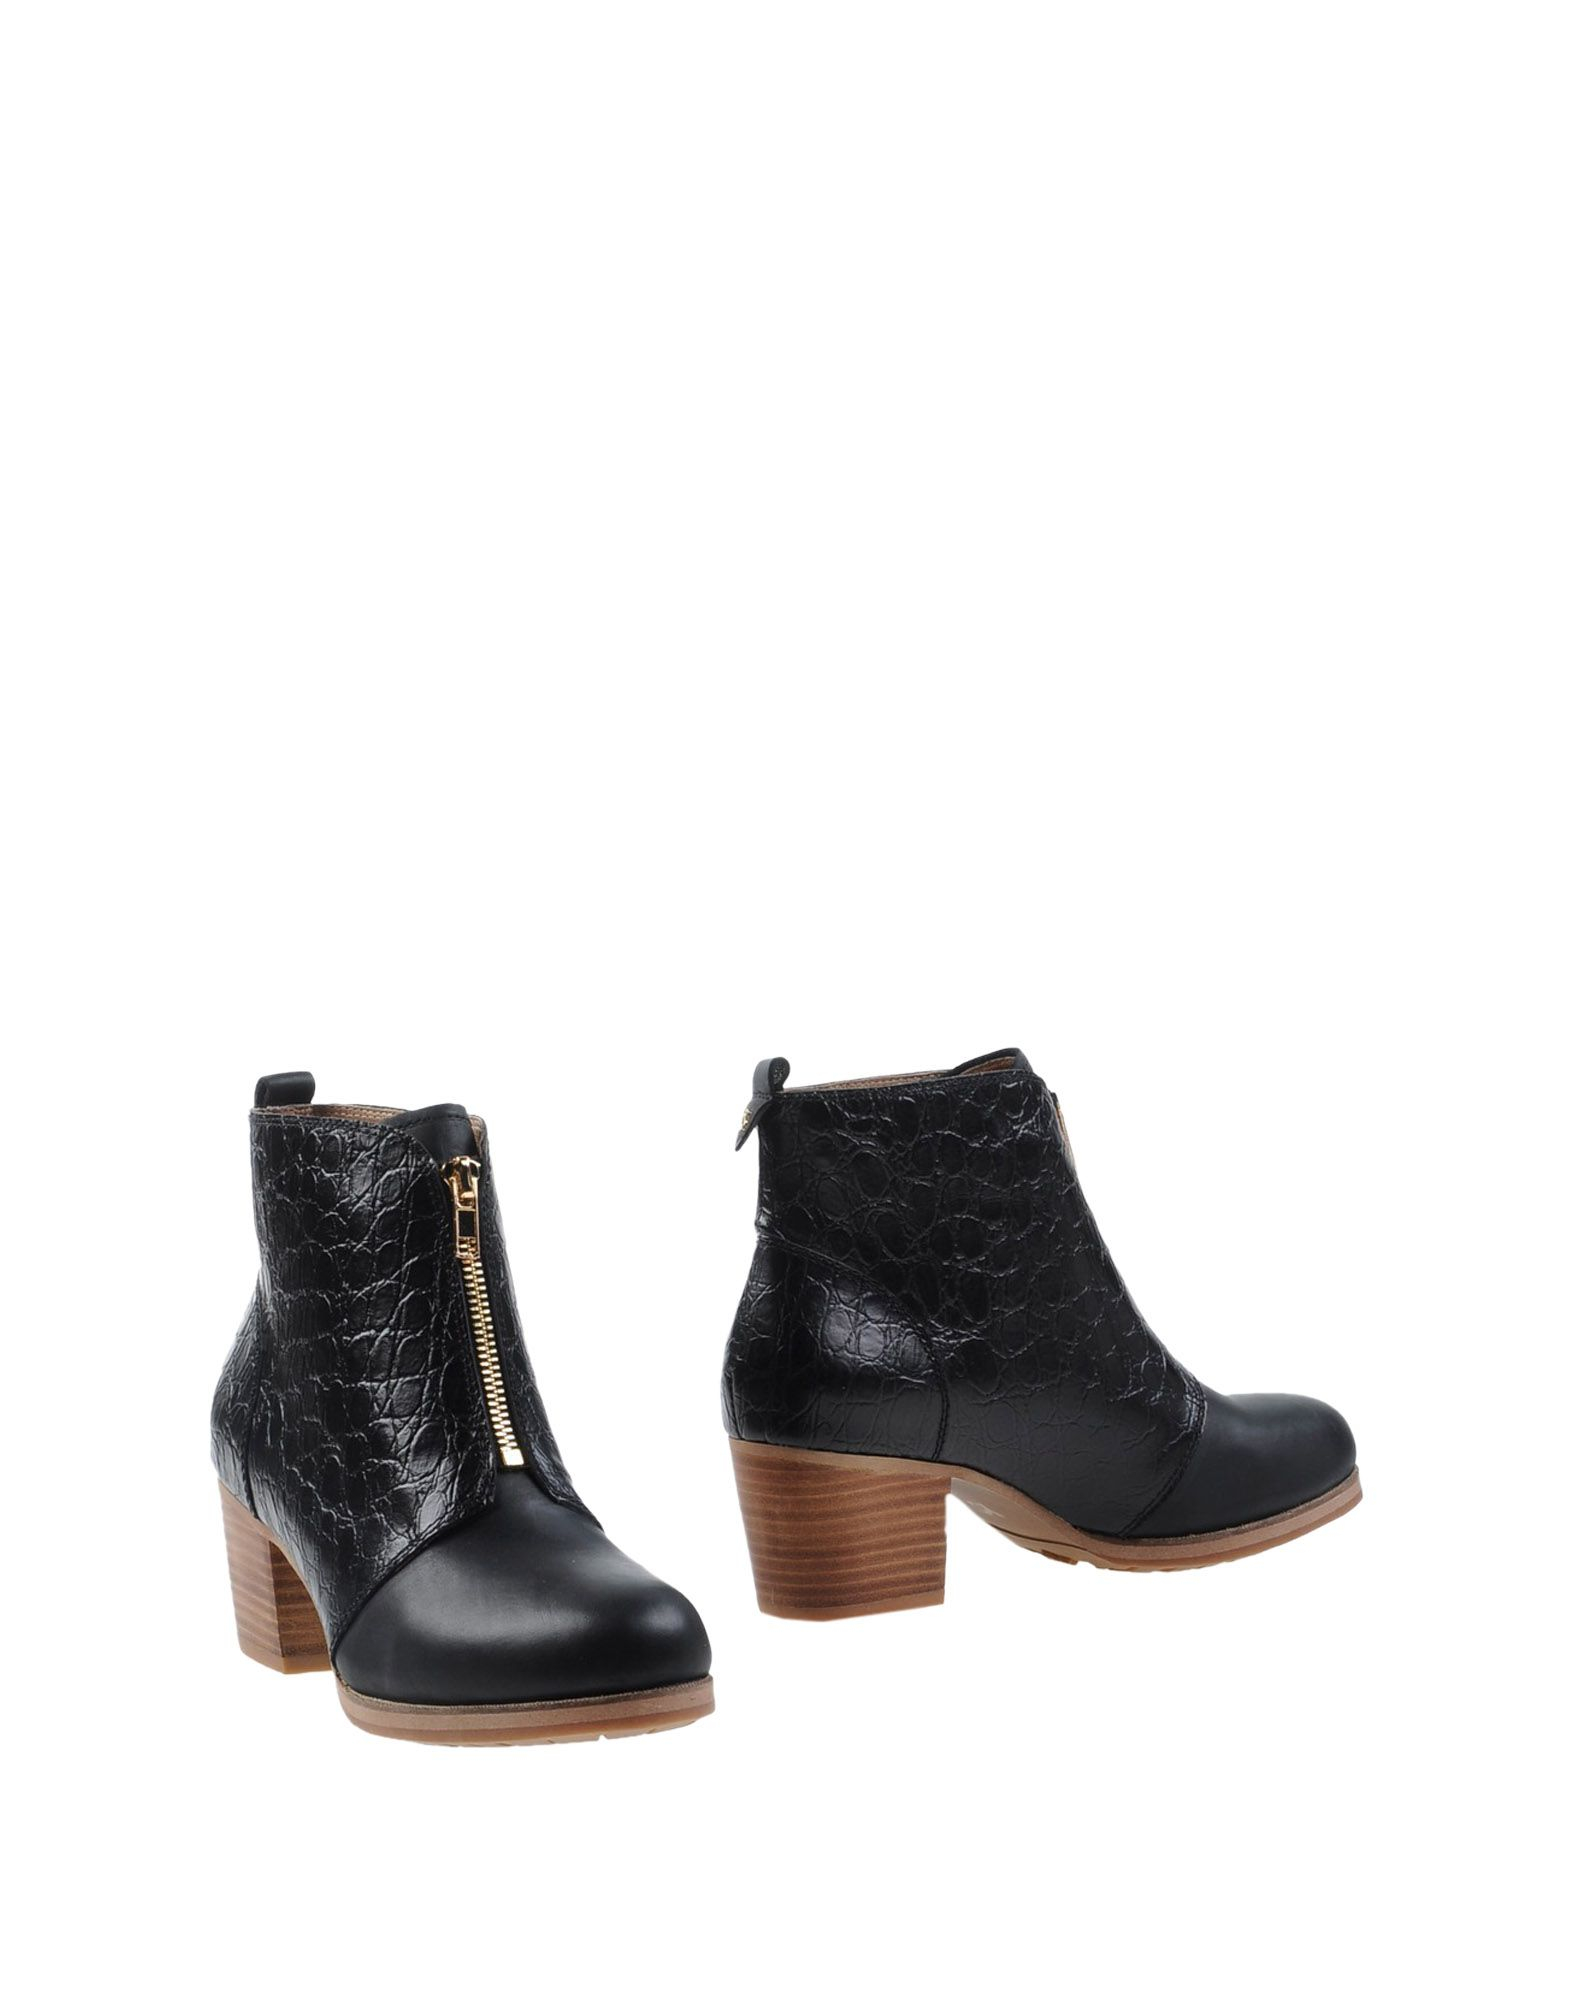 yosi samra ankle boots in black lyst